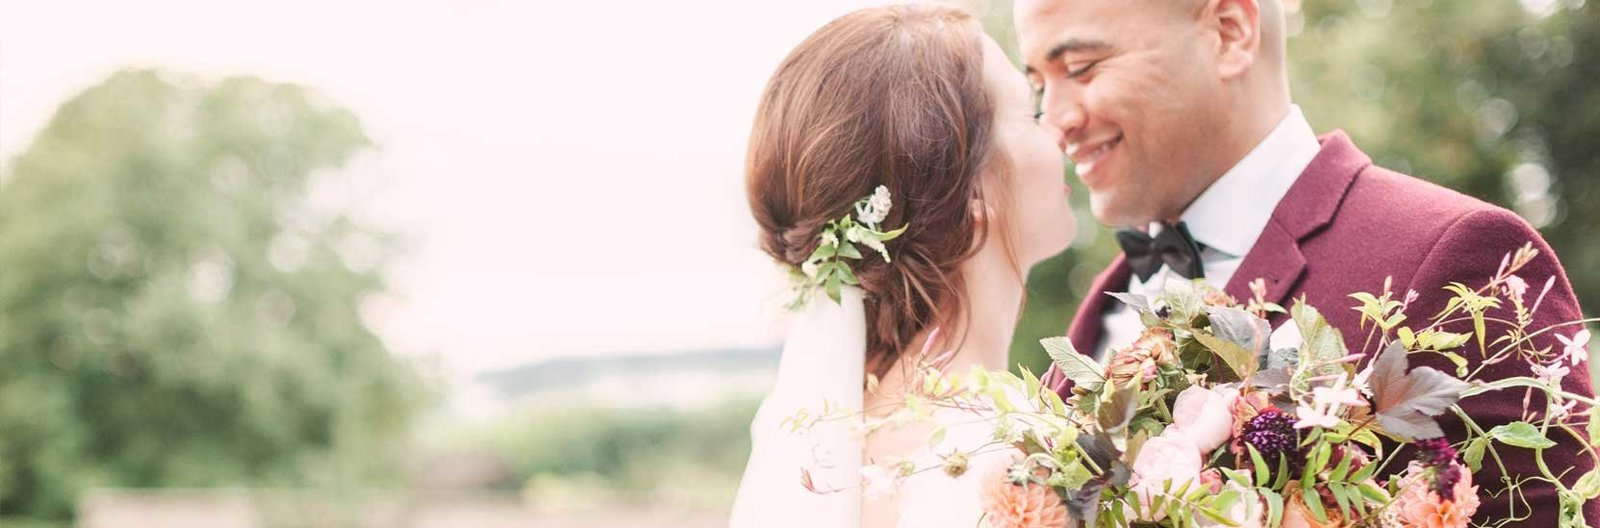 Wiltshire Wedding Photographer | Christina Sarah Photography